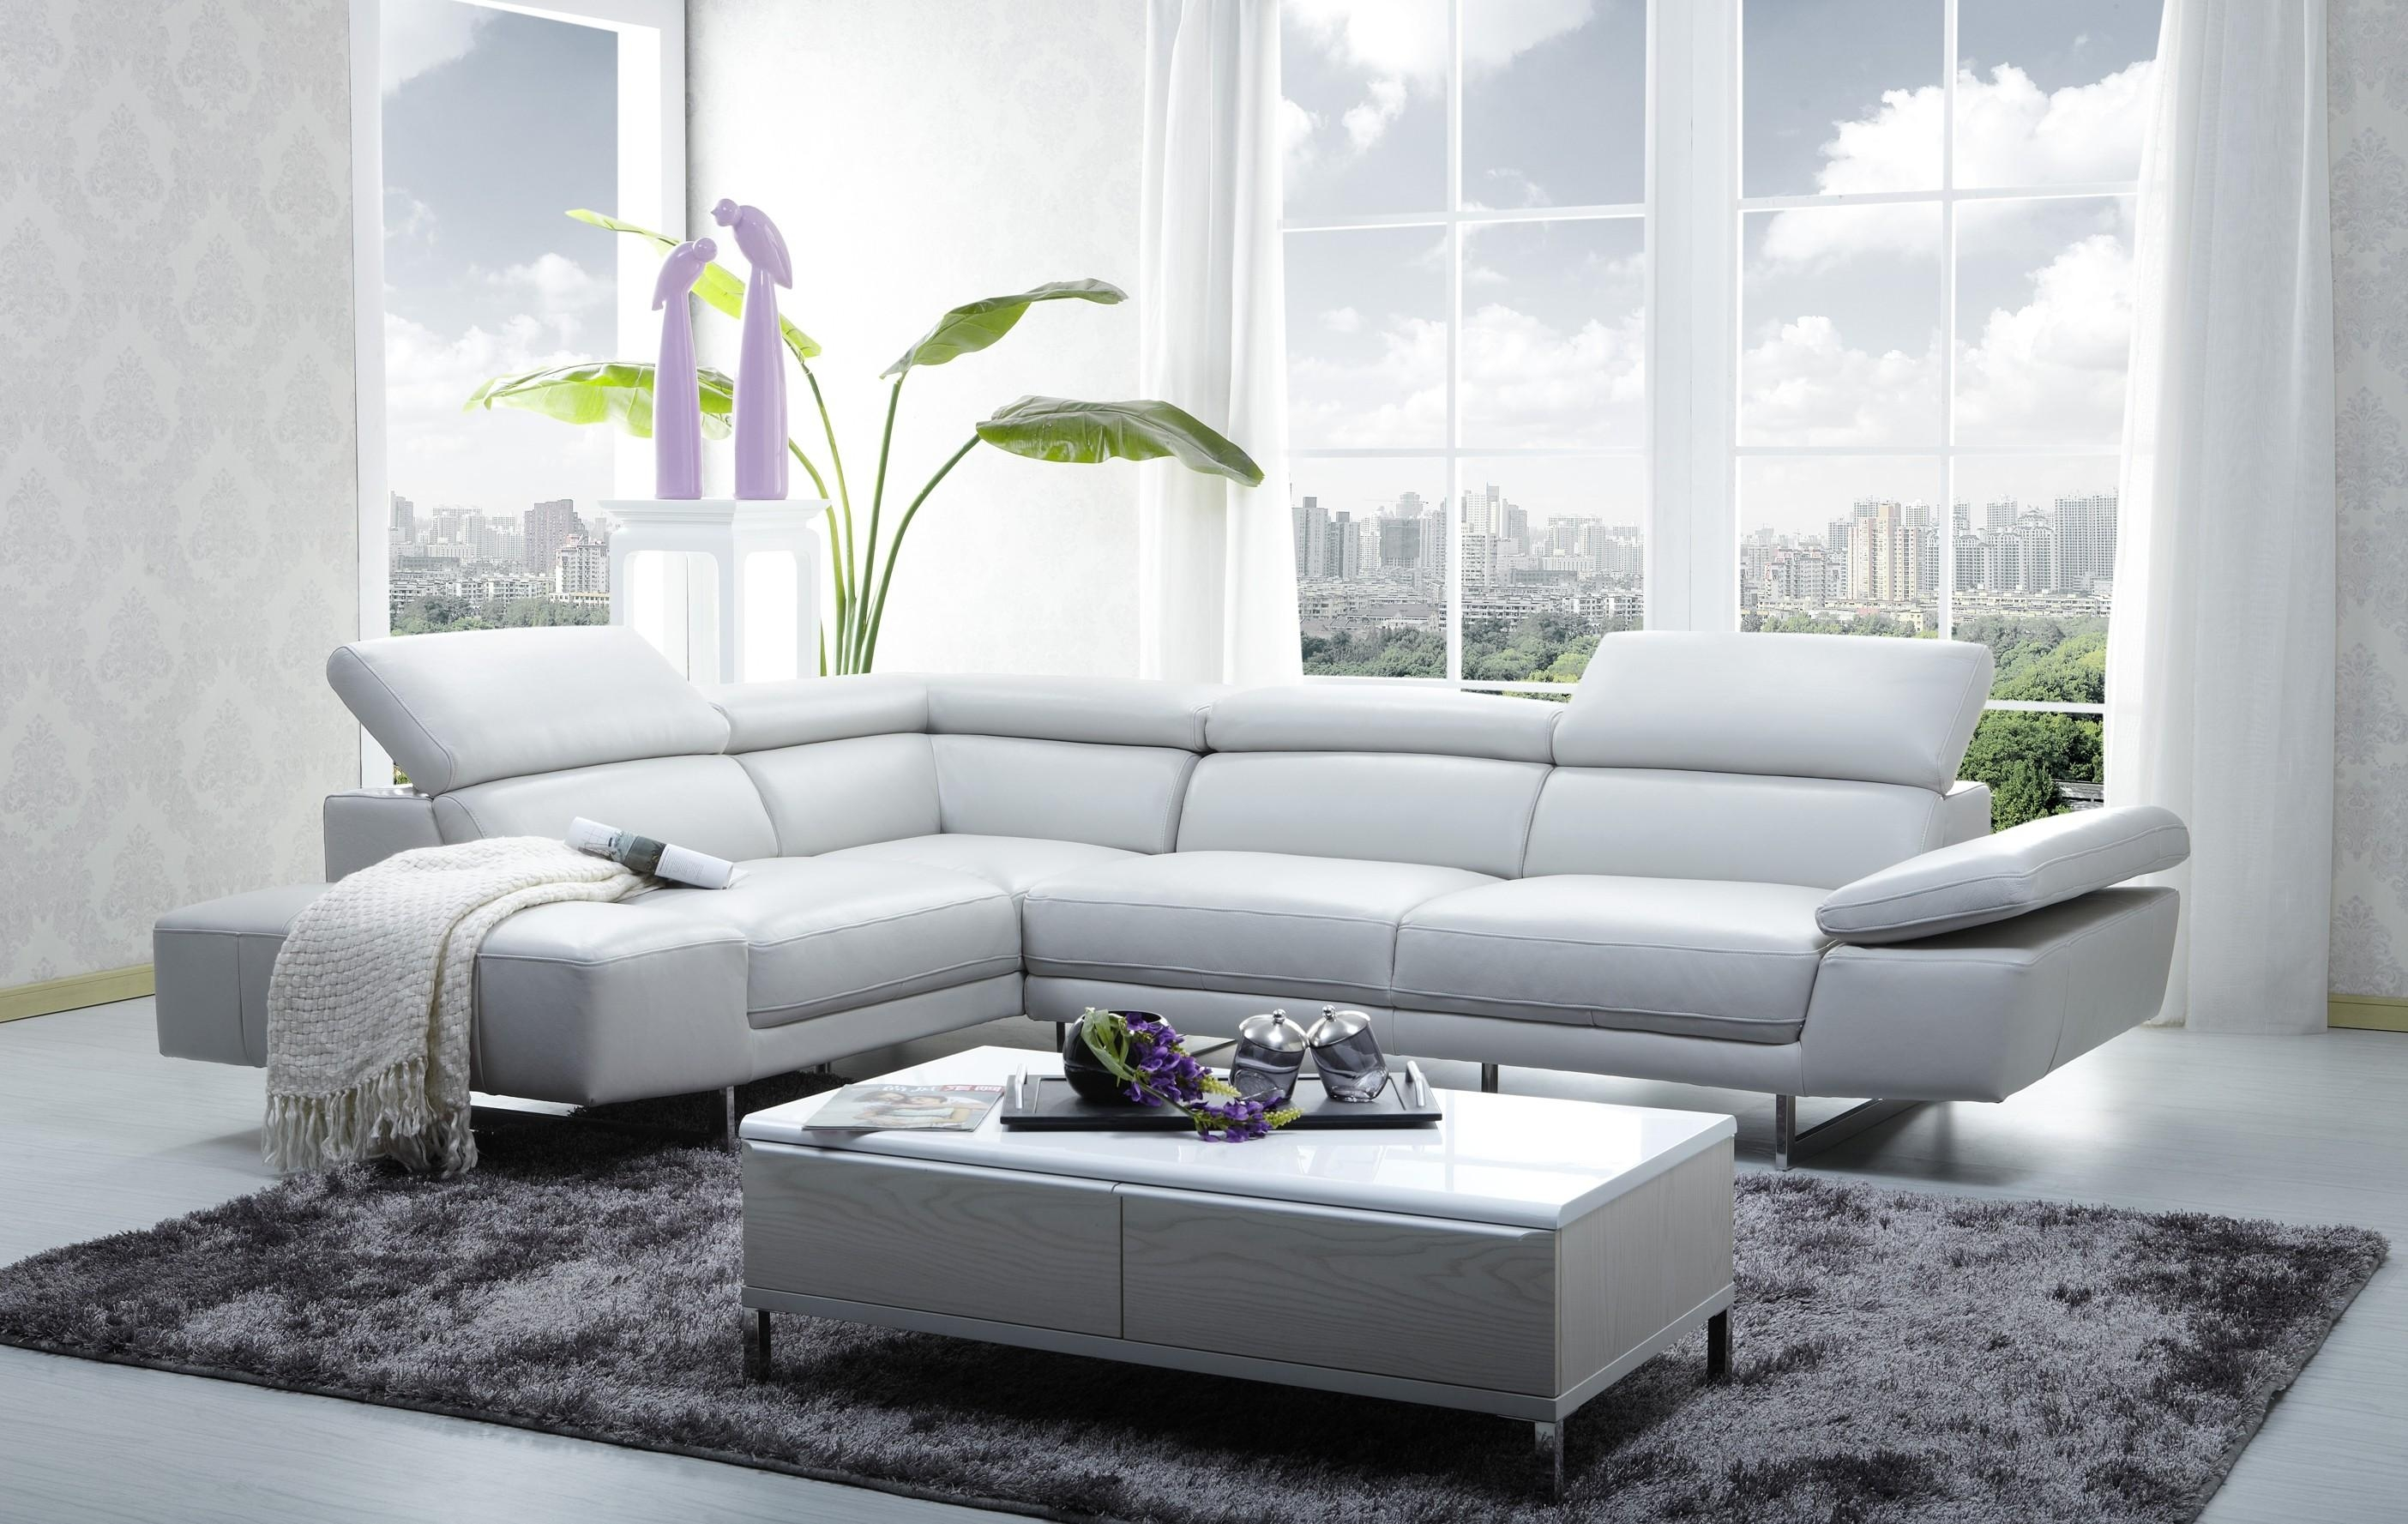 1717 Italian Leather Modern Sectional Sofa Within Modern Sofas (View 4 of 20)